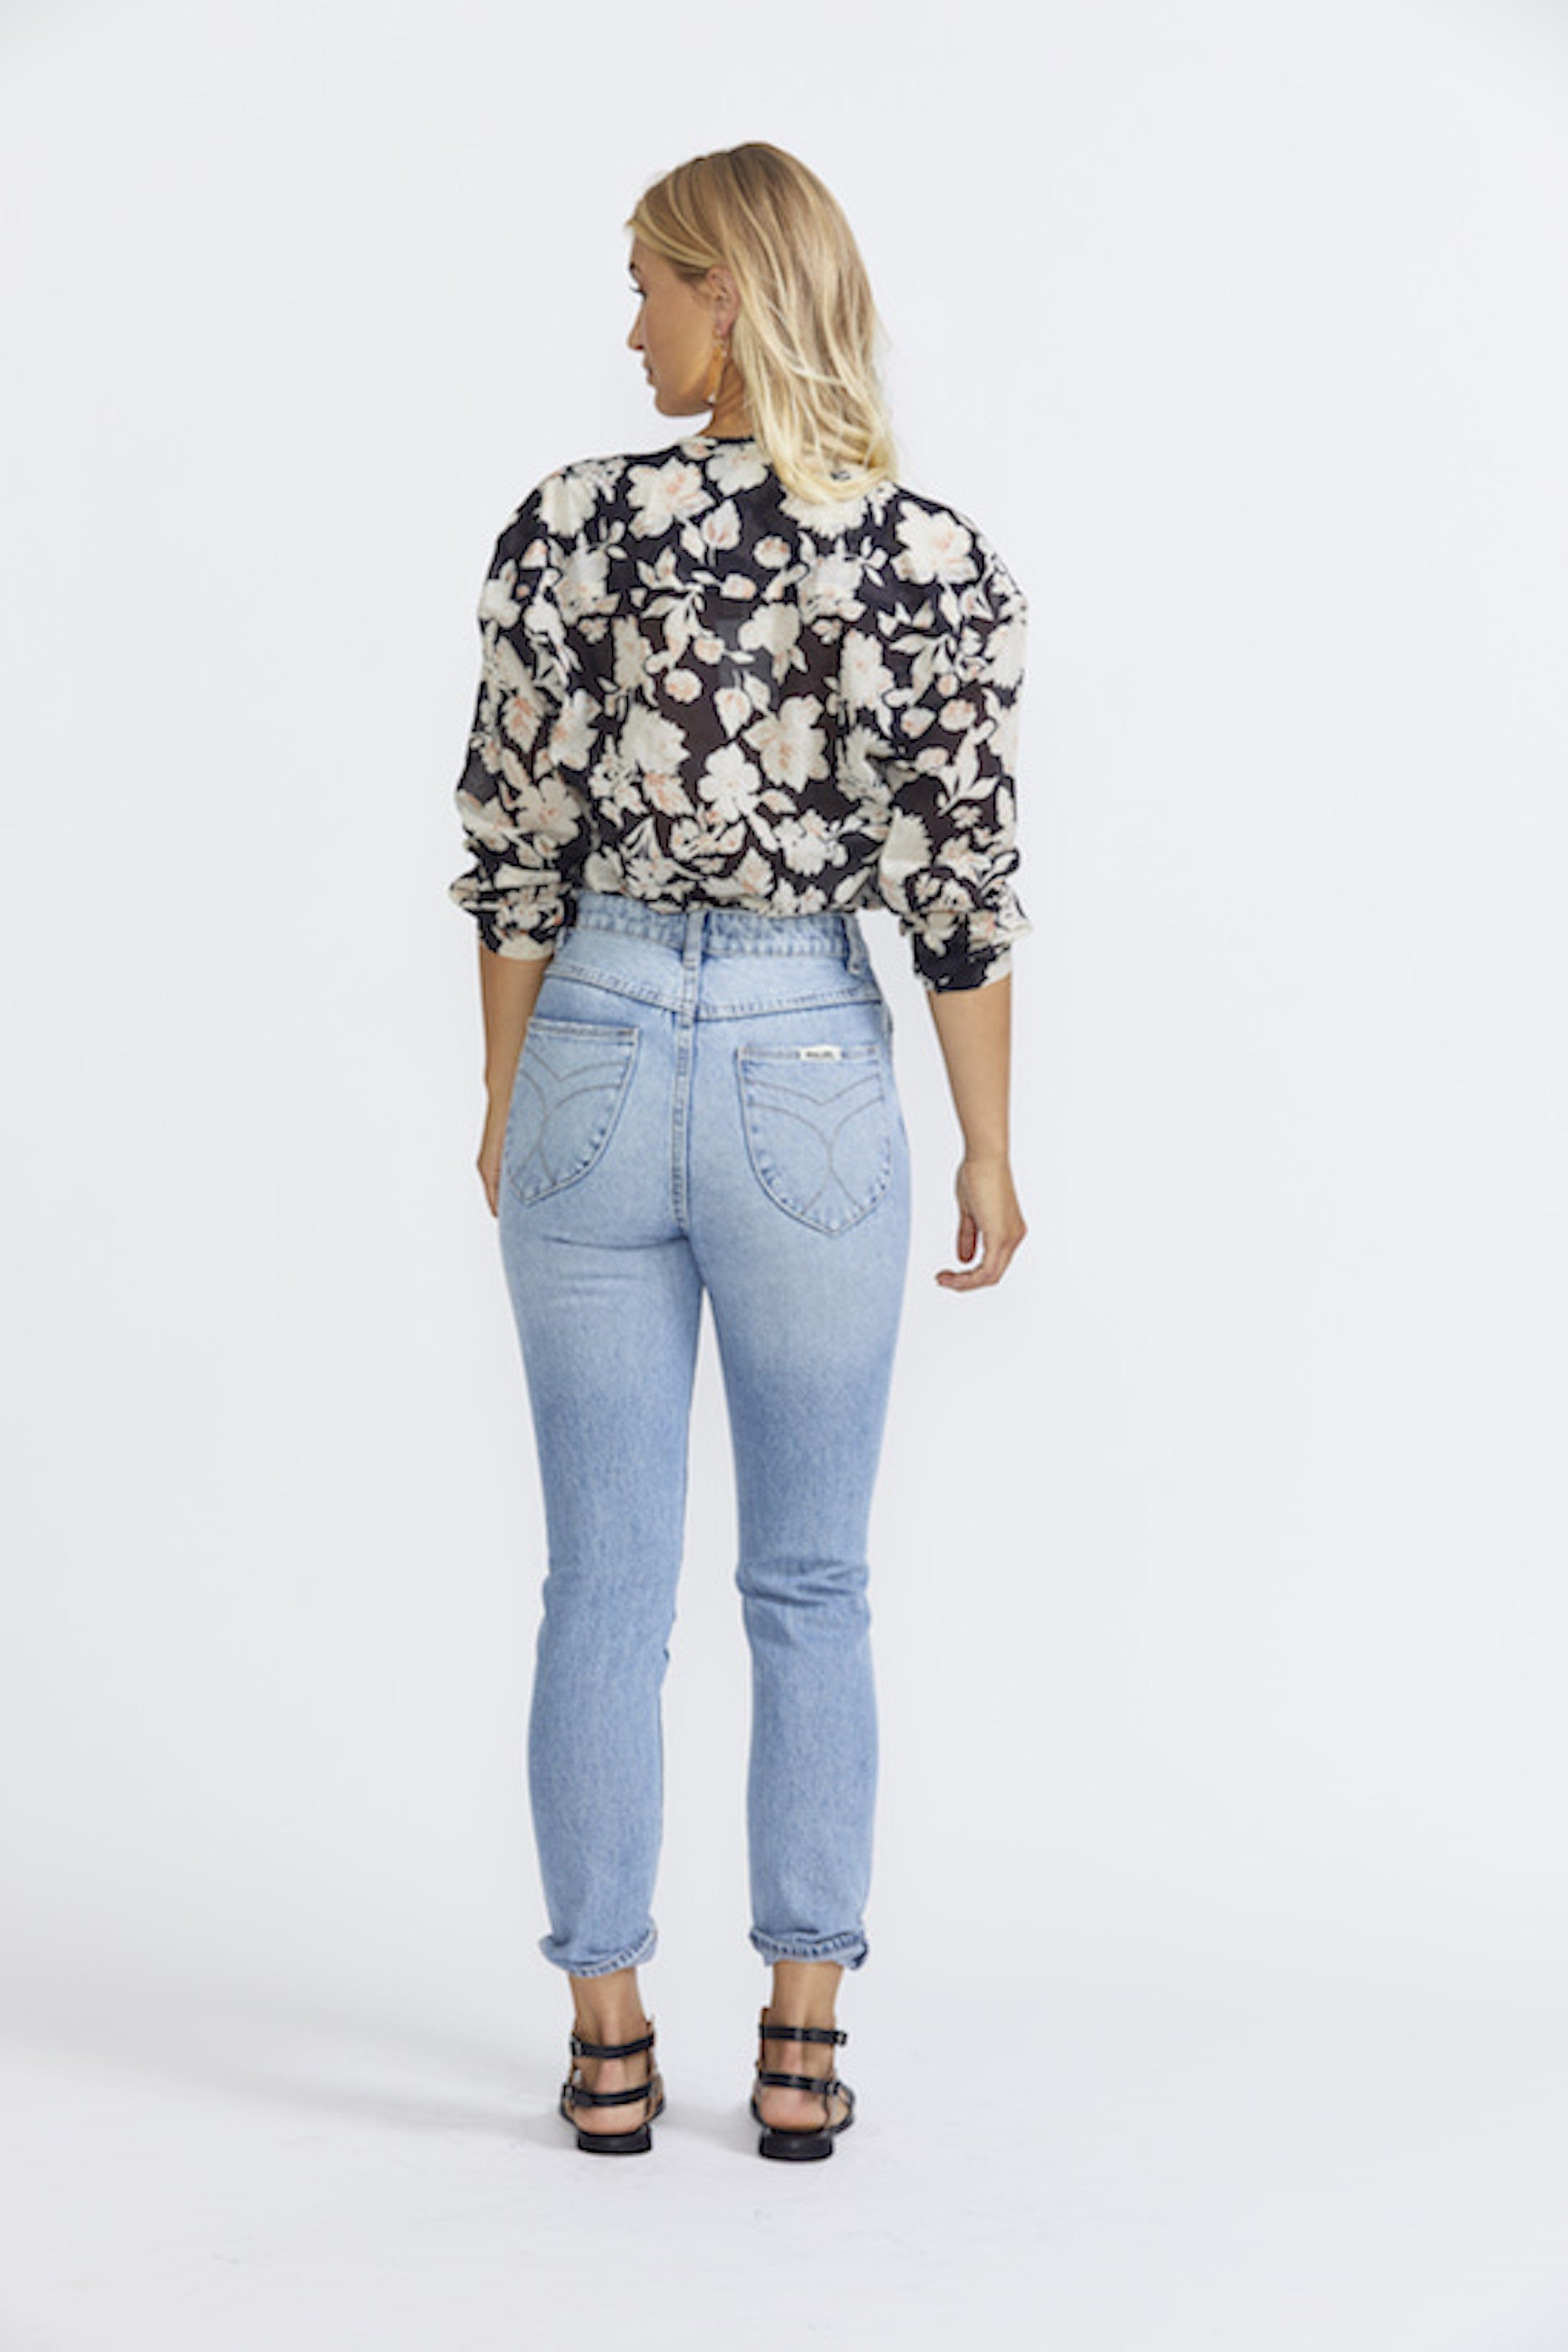 ÉSS THE LABEL Paloma Shirt - Black Floral